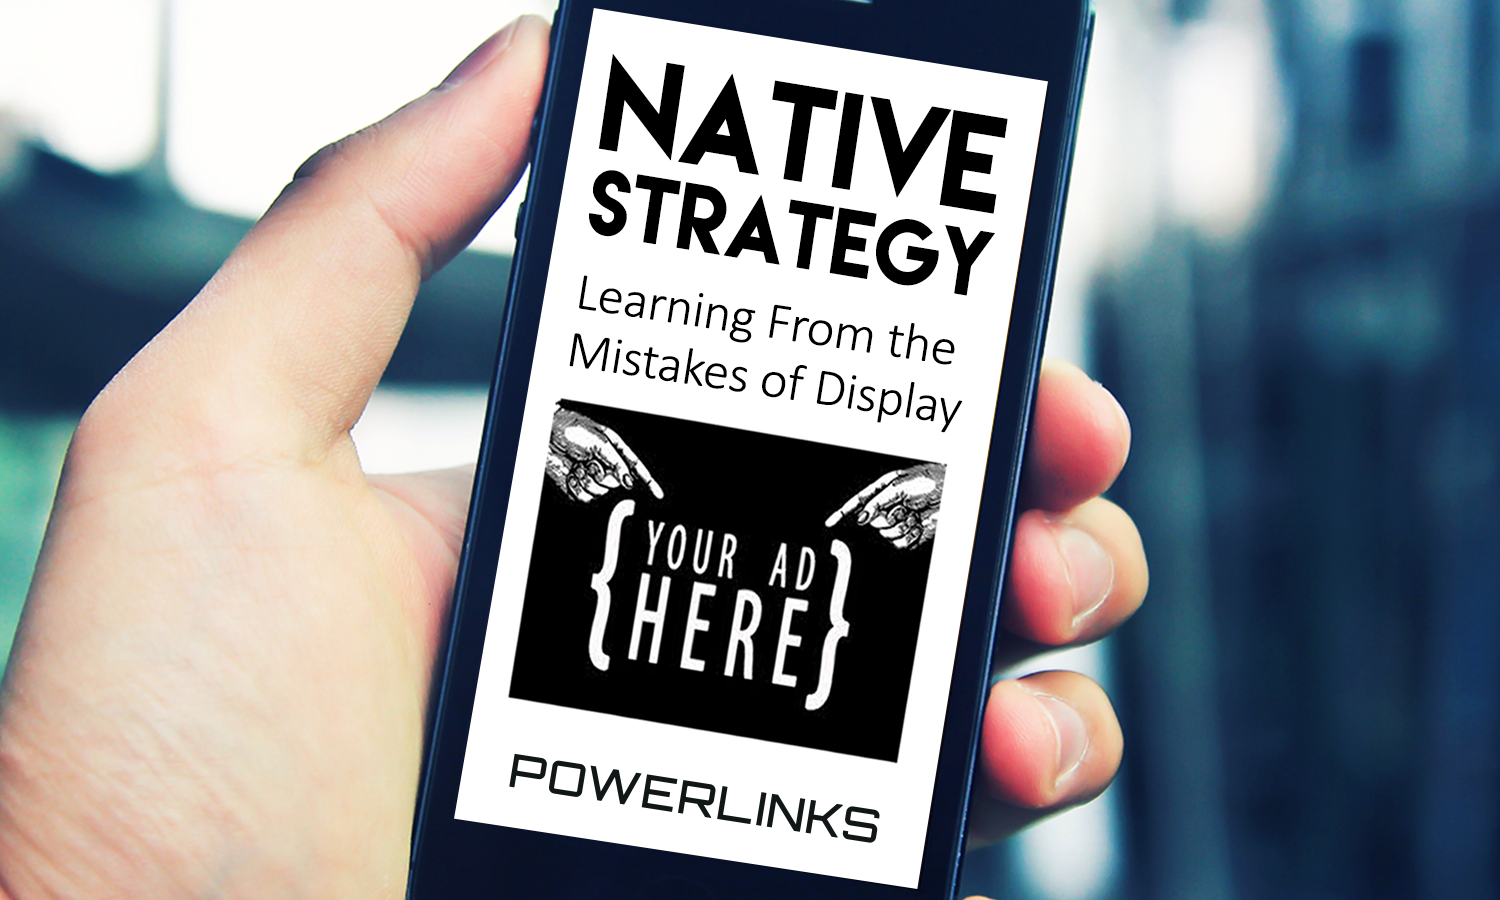 Native Strategy: Learning from the Mistakes of Display